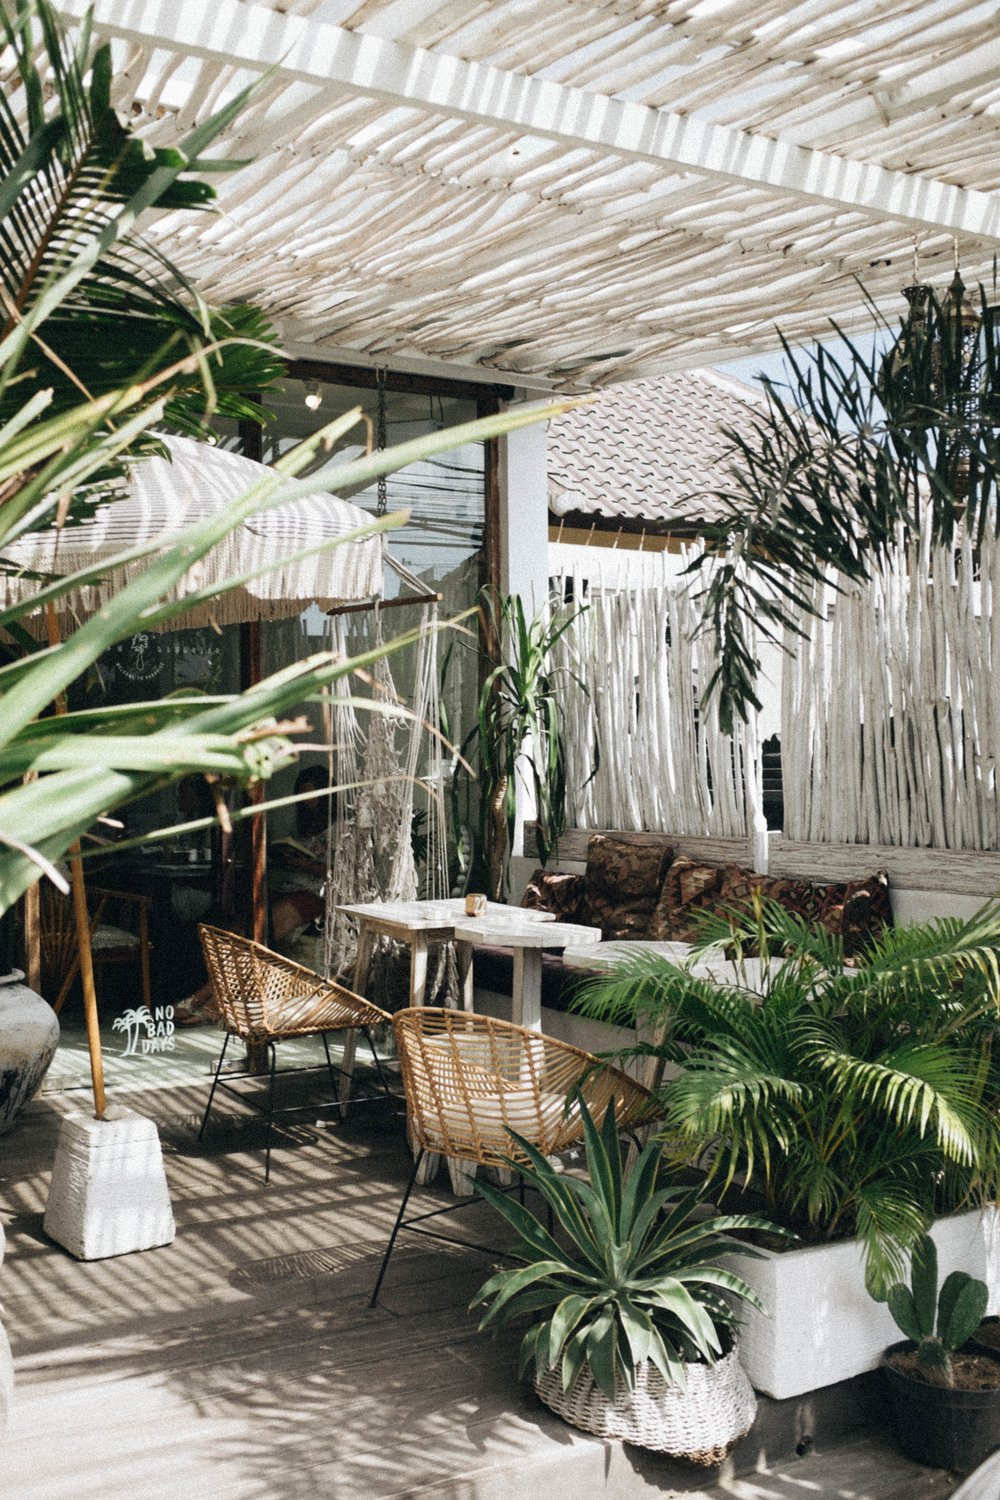 This patio in Indonesia sits underneath a wooden pergola, which provides varying pockets of shade as the sun makes its way across the sky. / Image by    Sonnie Hiles via Unsplash